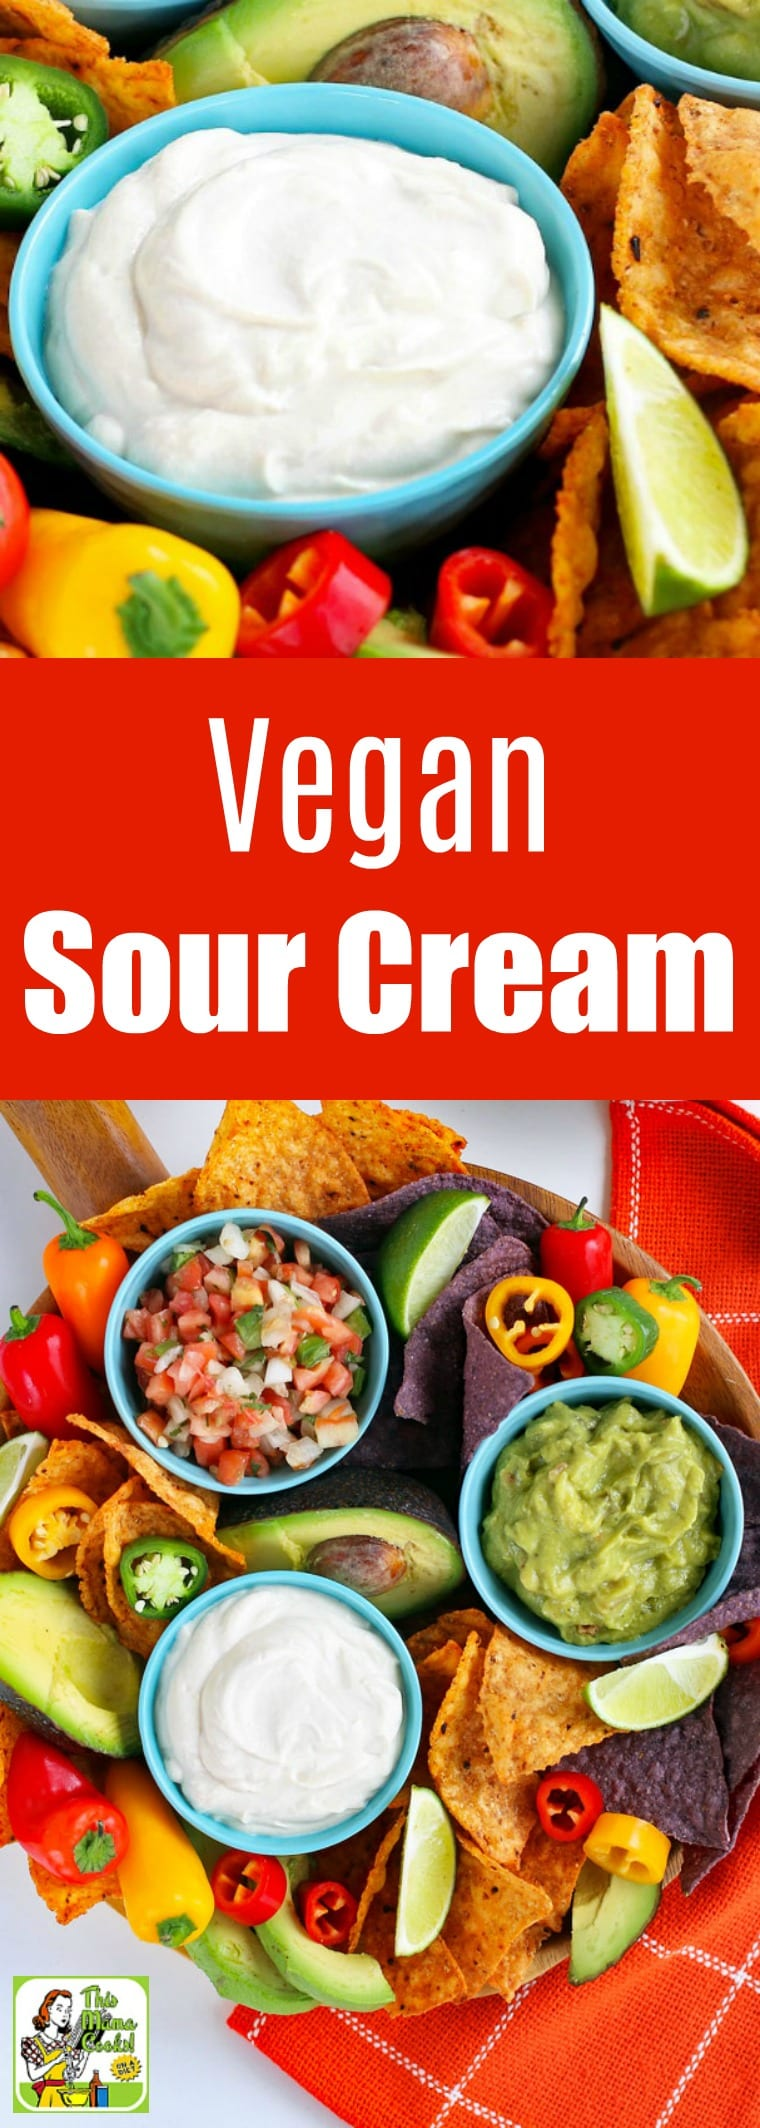 This creamy vegan sour cream is made with firm tofu. Perfect to use wherever you need a dairy-free sour cream substitute. Use it in place of crema Mexicana in your favorite Mexican dishes like tacos, burritos, or nachos. A terrific vegan and dairy-free substitution for crème fraîche, too! #recipes #easy #recipeoftheday #glutenfree #easyrecipe #easyrecipes #glutenfreerecipes #dairyfree #veganfood #vegan #veganrecipes #tofu